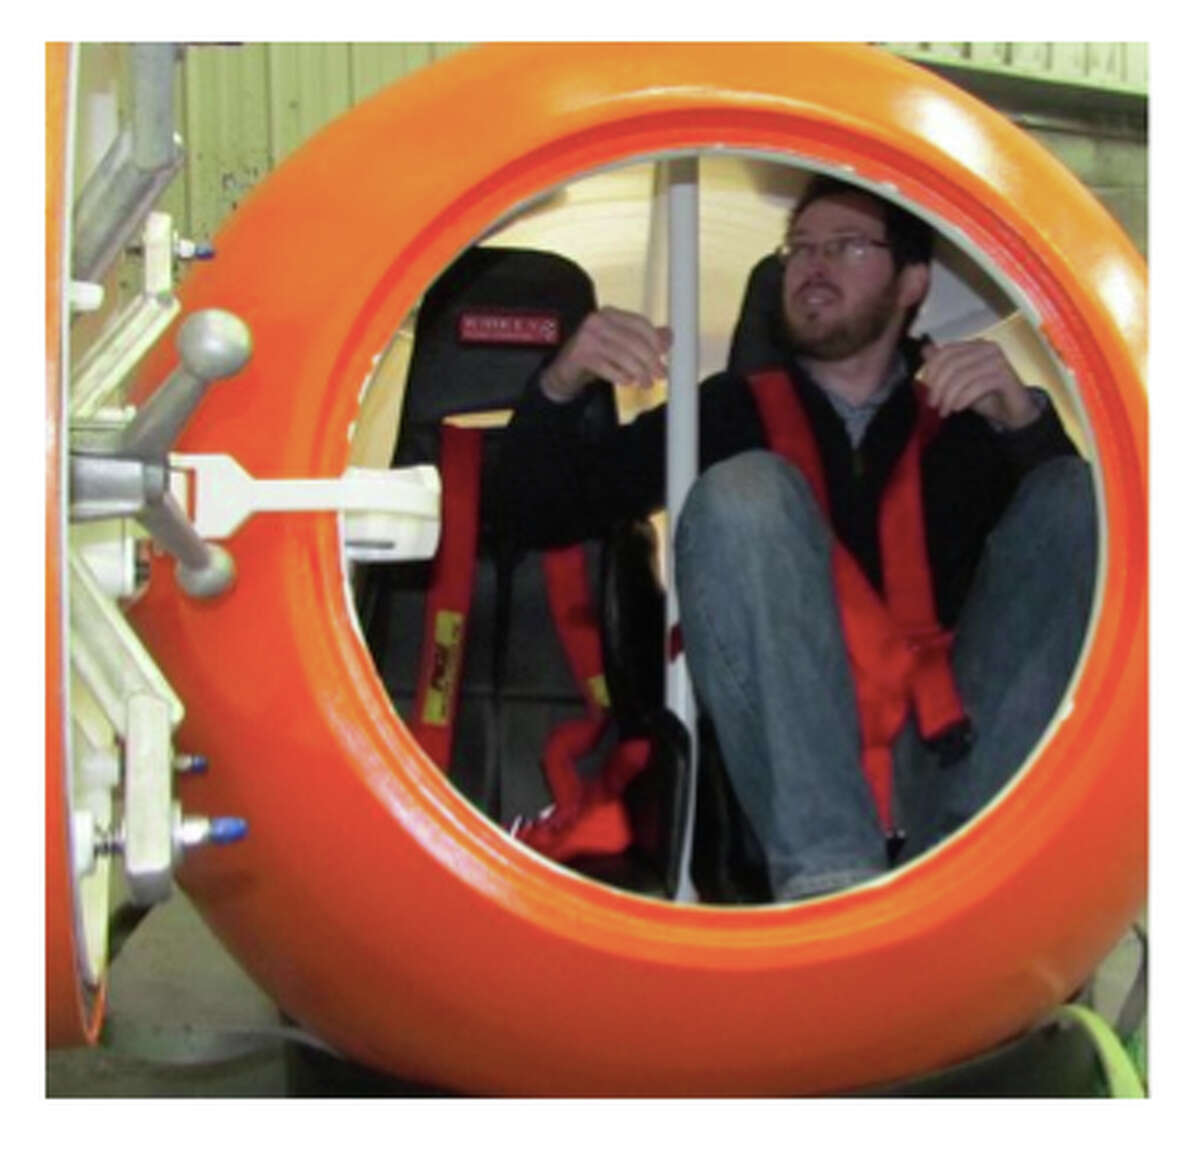 The Survival Capsule being developed and sold by the Mukilteo company of the same name.